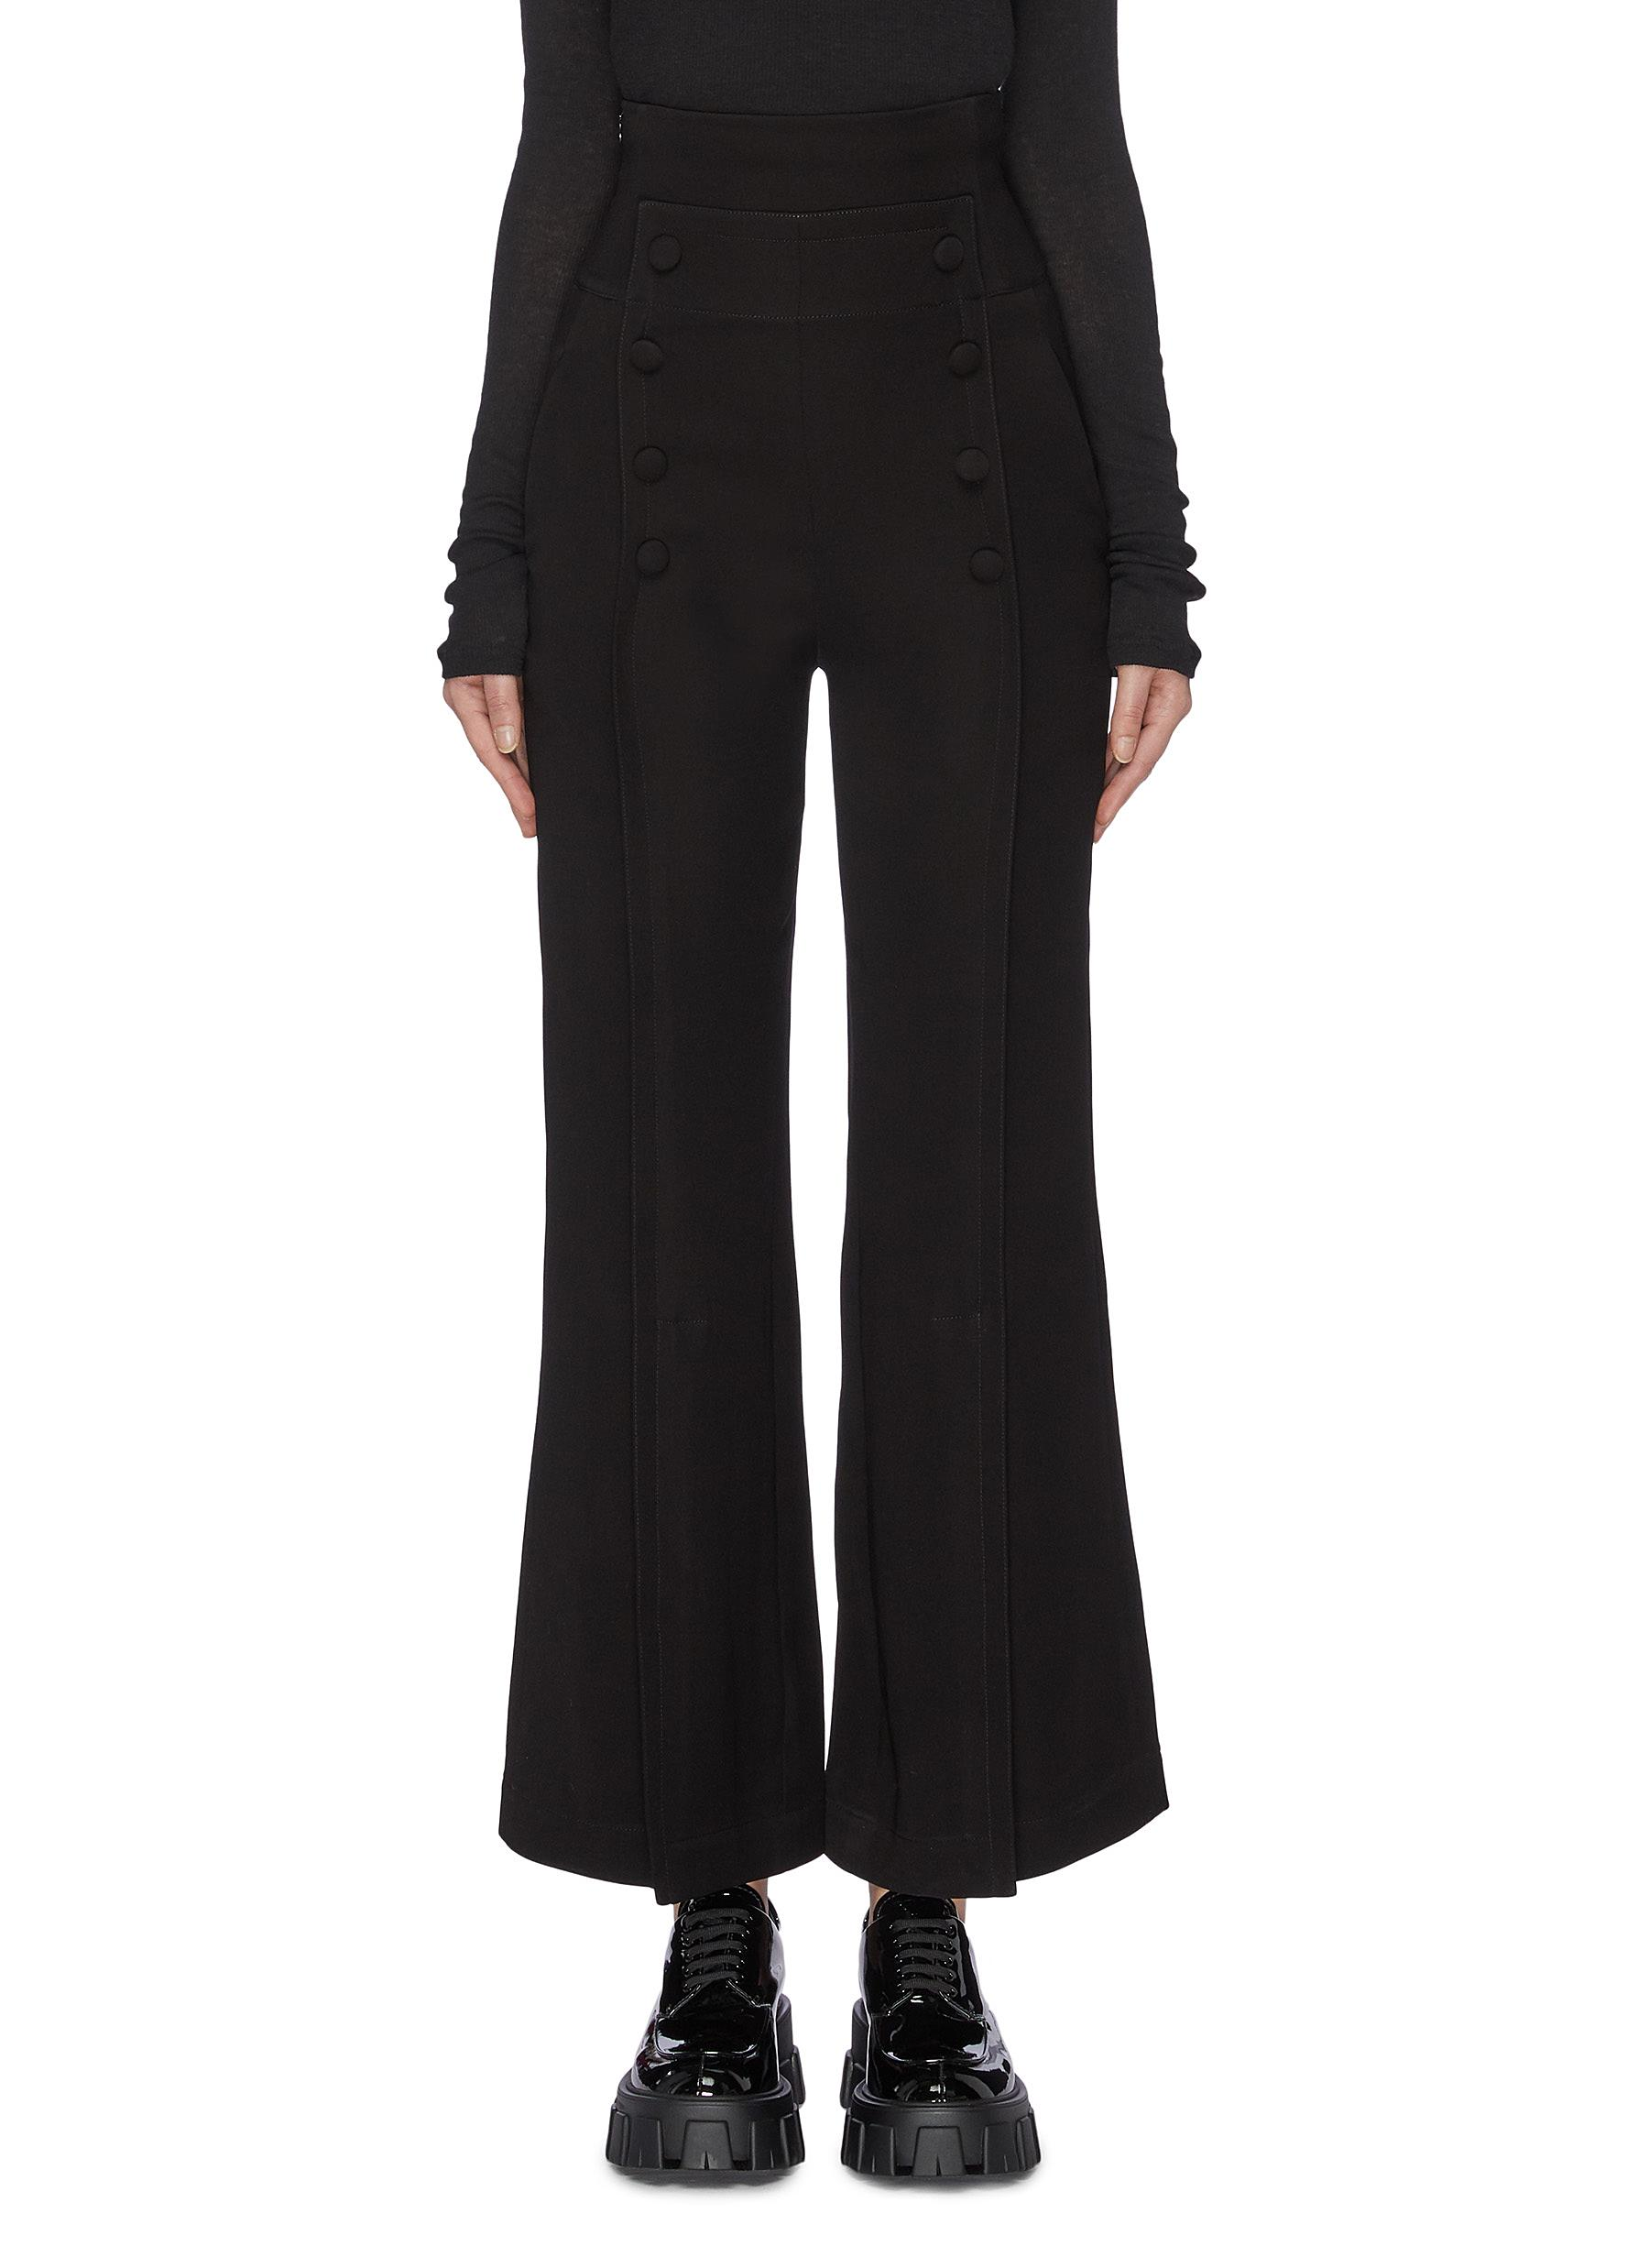 Pintuck mock button front flared pants by Sans Titre